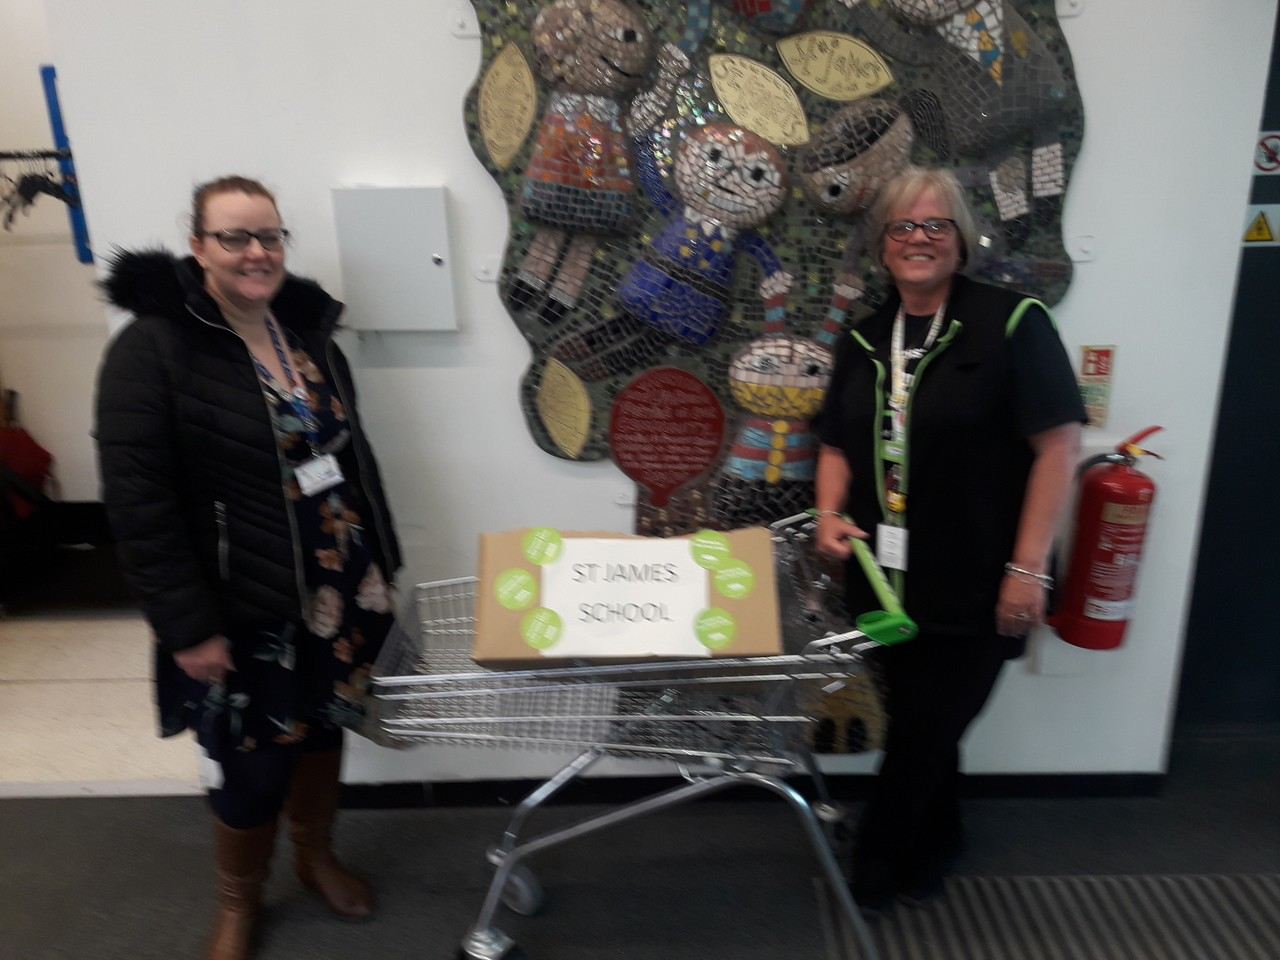 A donation goes out to St James East Crompton  | Asda Shaw